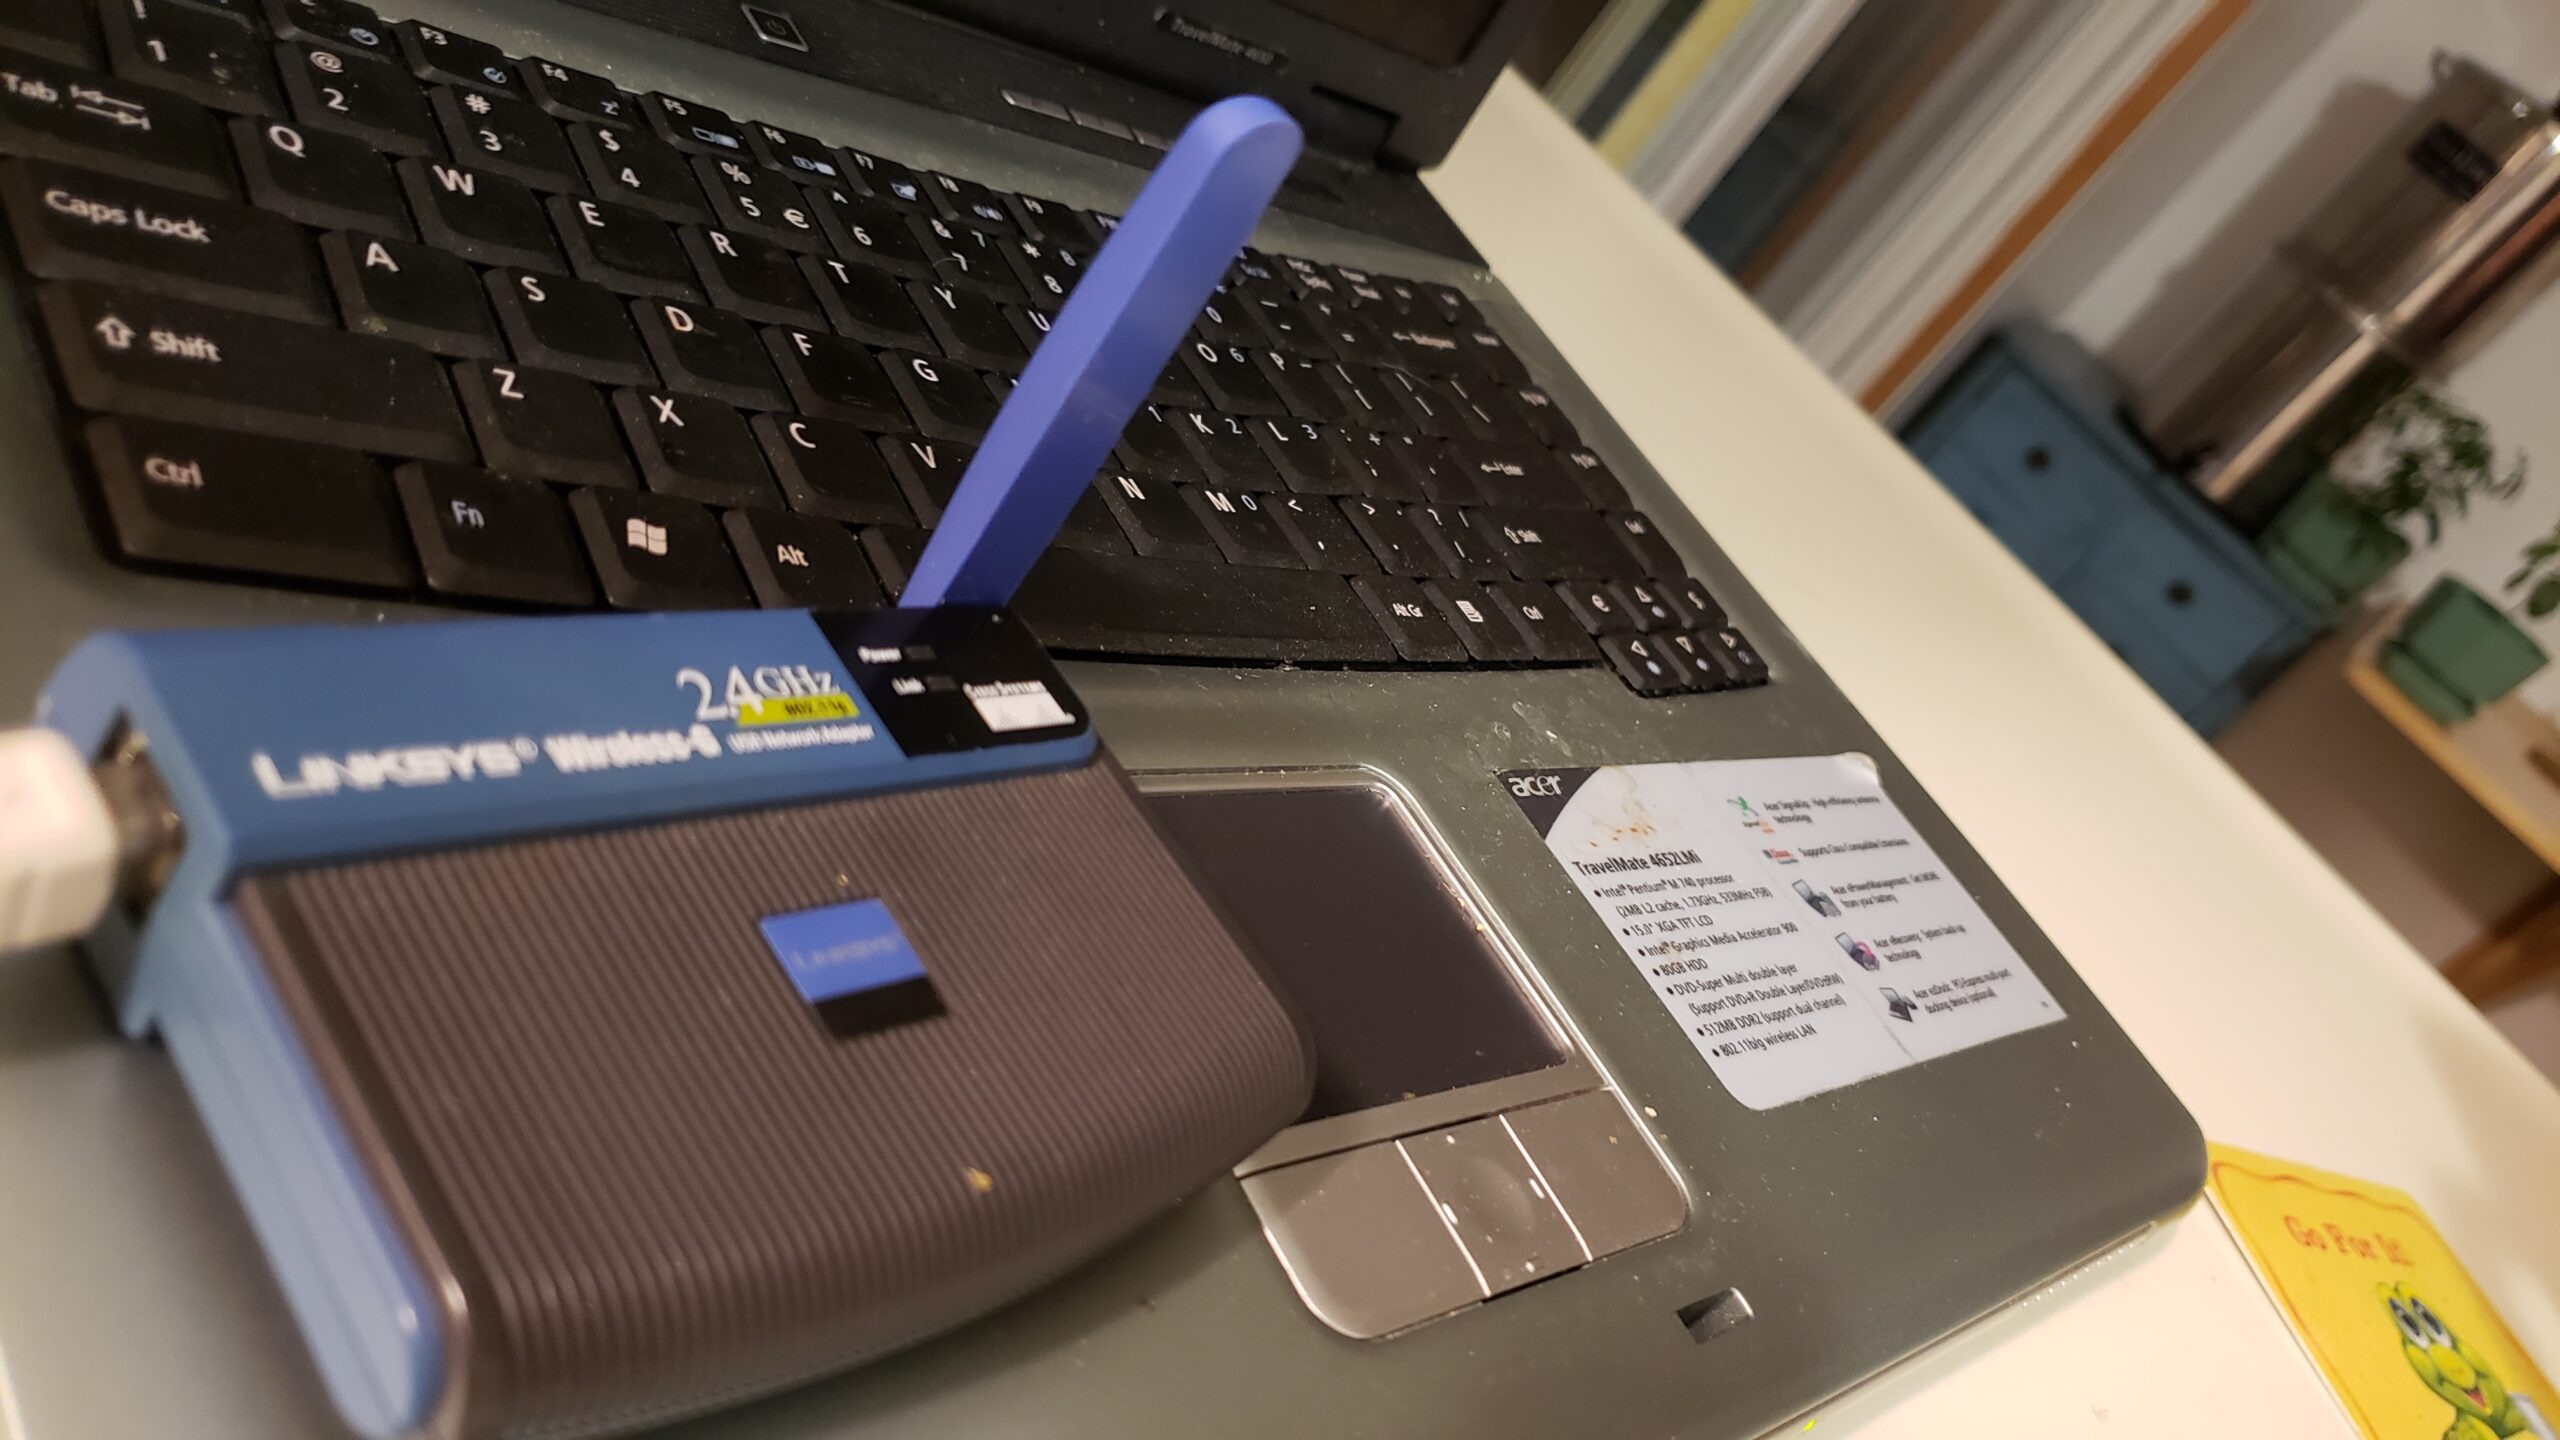 My Kitchen laptop's built-in wireless started working again!